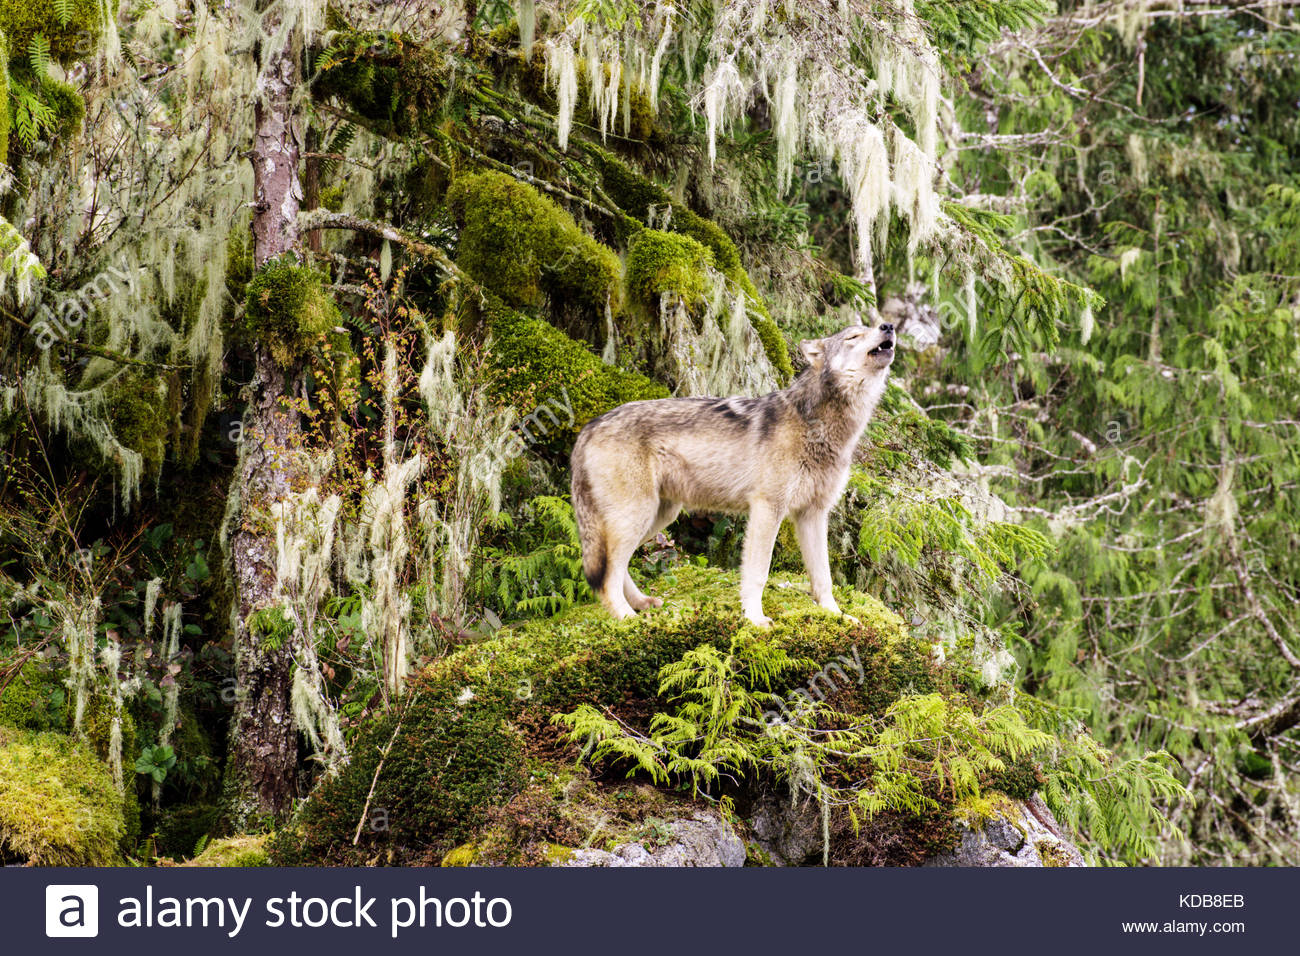 A coastal wolf stands on a bed of moss and howls. - Stock Image